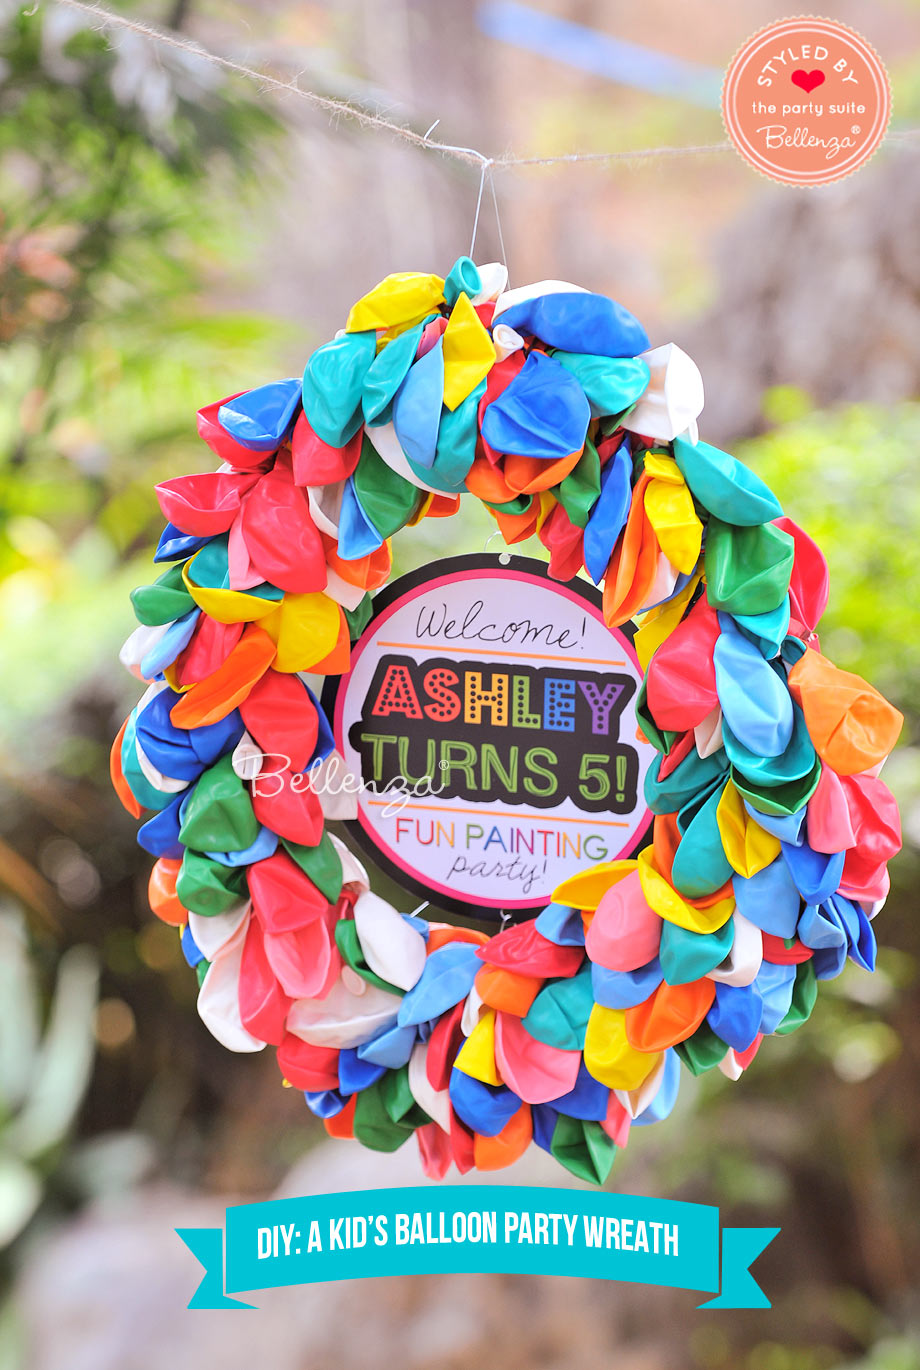 A colorful balloon wreath for an art or painting party.  It be used as a creative sign for a birthday.